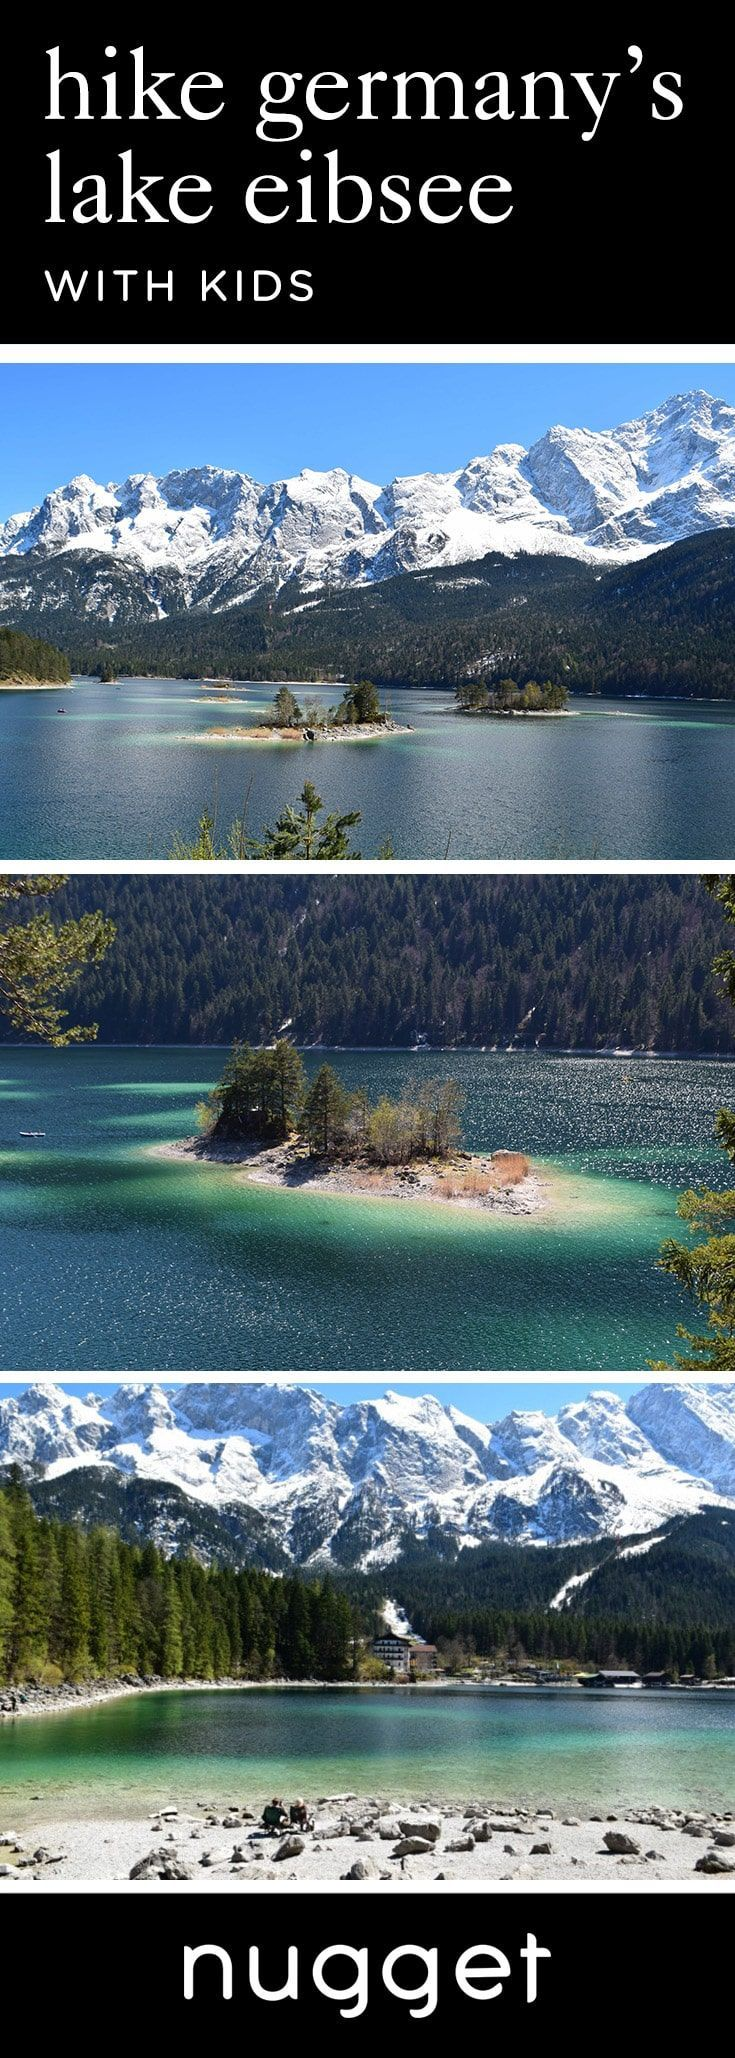 Discover the emerald waters of Lake Eibsee with kids. Hike around the Eibsee and take in the majestic views of the Zugspitze in Bavaria, Germany. #FamilyTravel #TravelItinerary #Germany